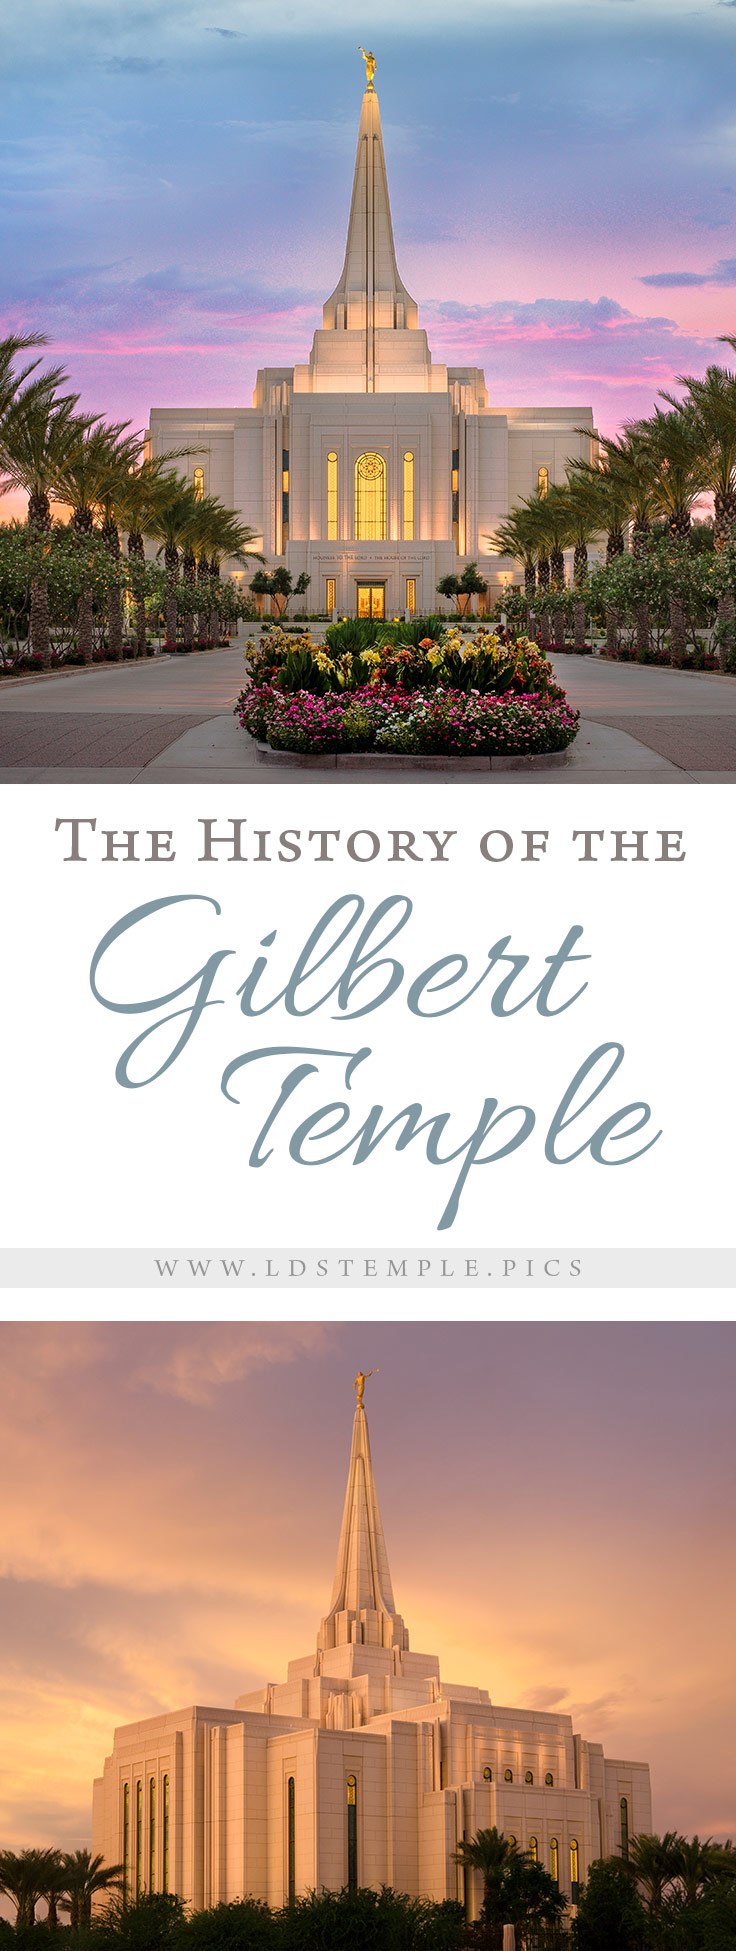 The History of the Gilbert Arizona Temple